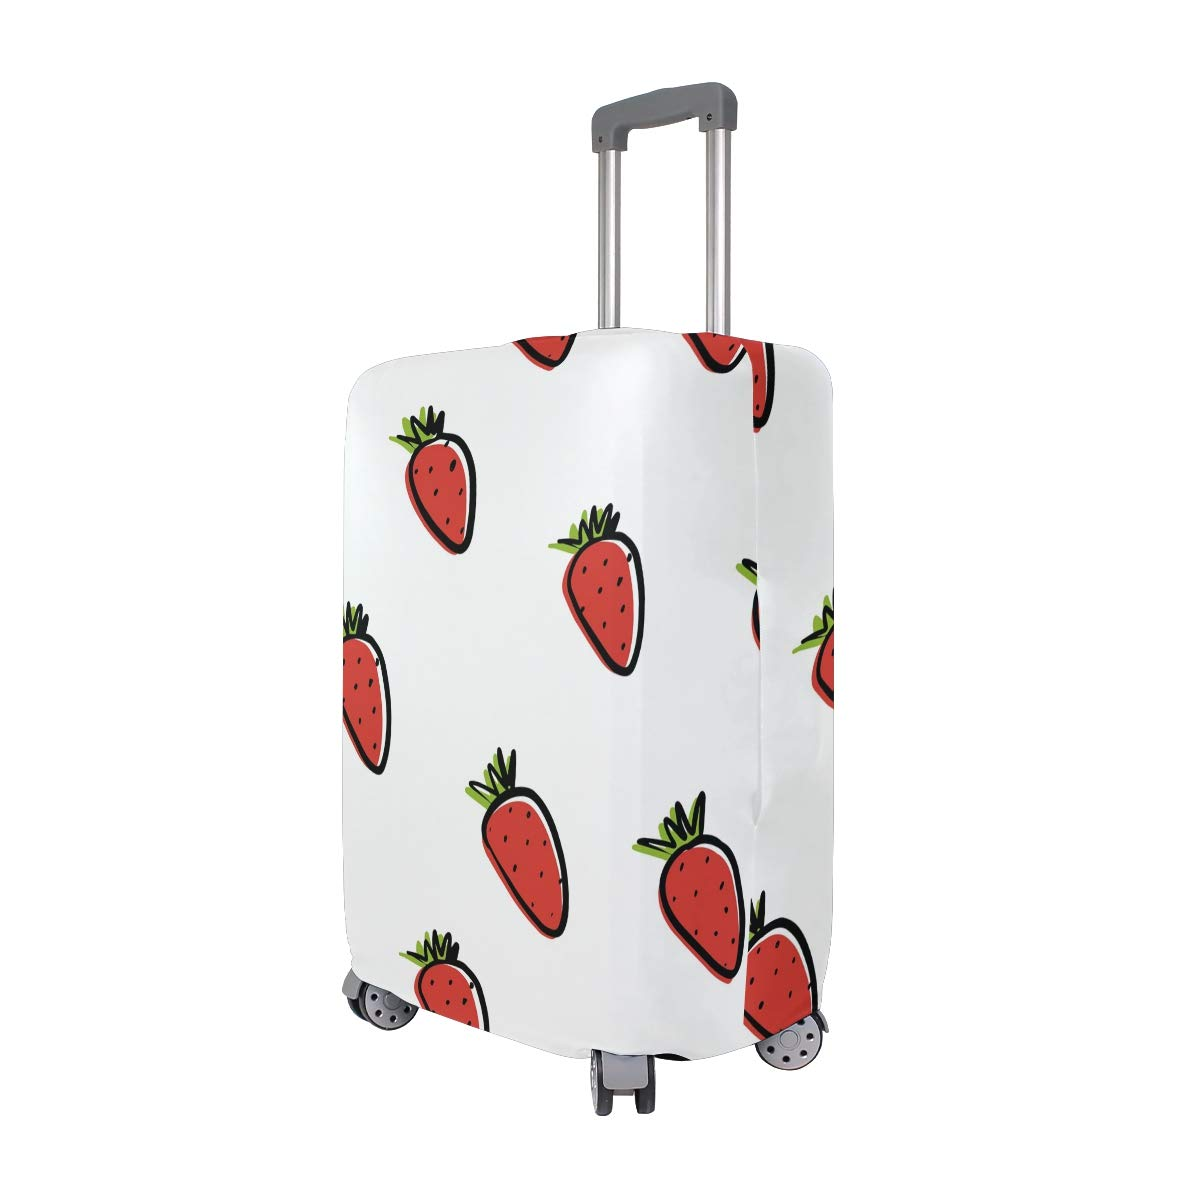 Baggage Covers Red Strawberries Pattern Summer White Washable Protective Case